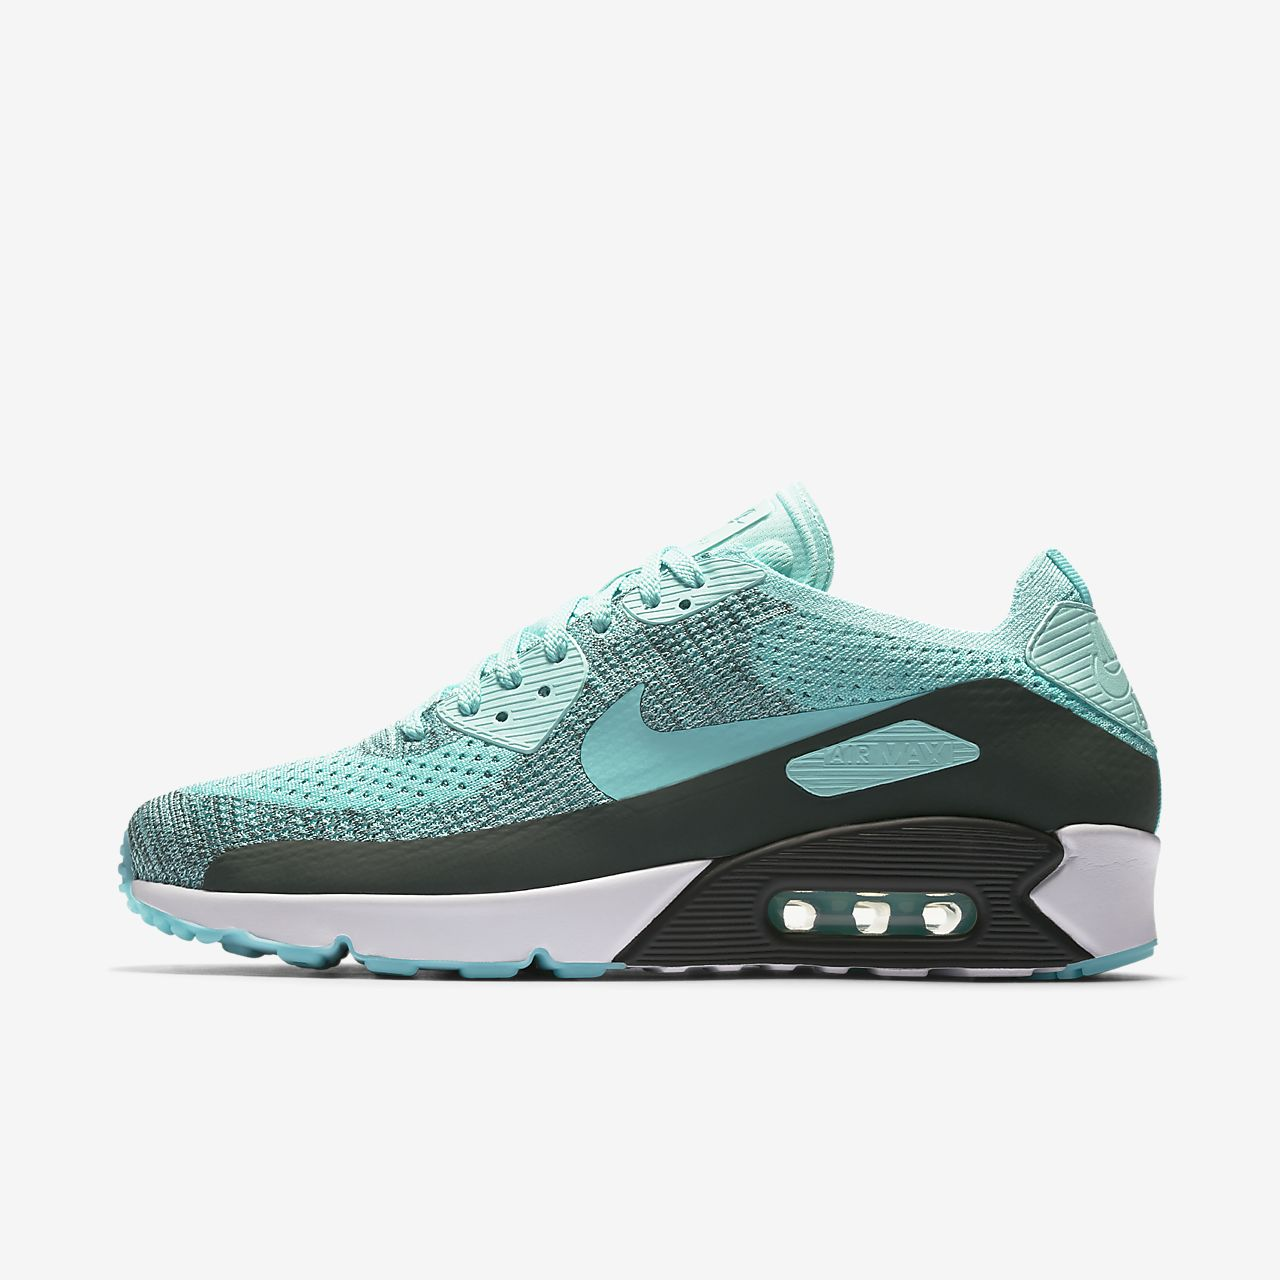 air max 90 men's green nz